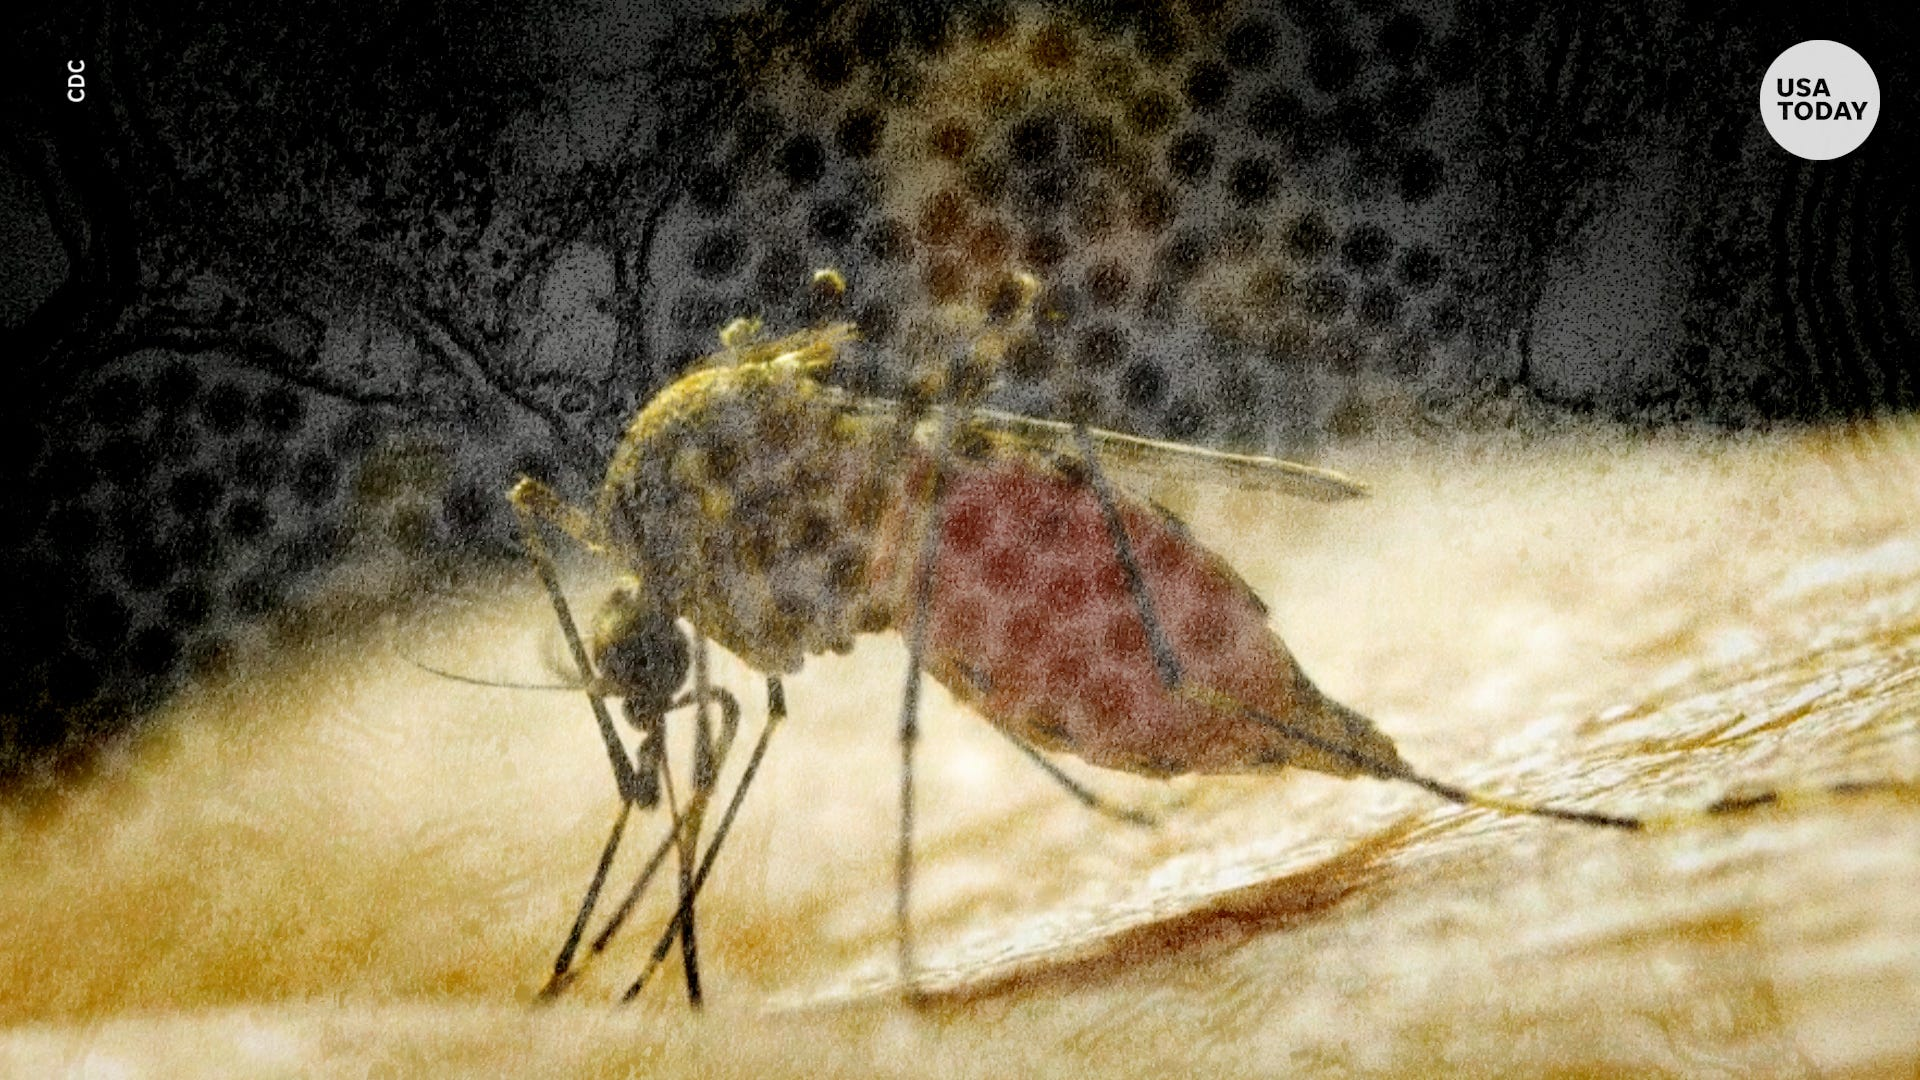 Breaking news: Diseases like West Nile, EEE and flesh-eating bacteria are flourishing due to climate change